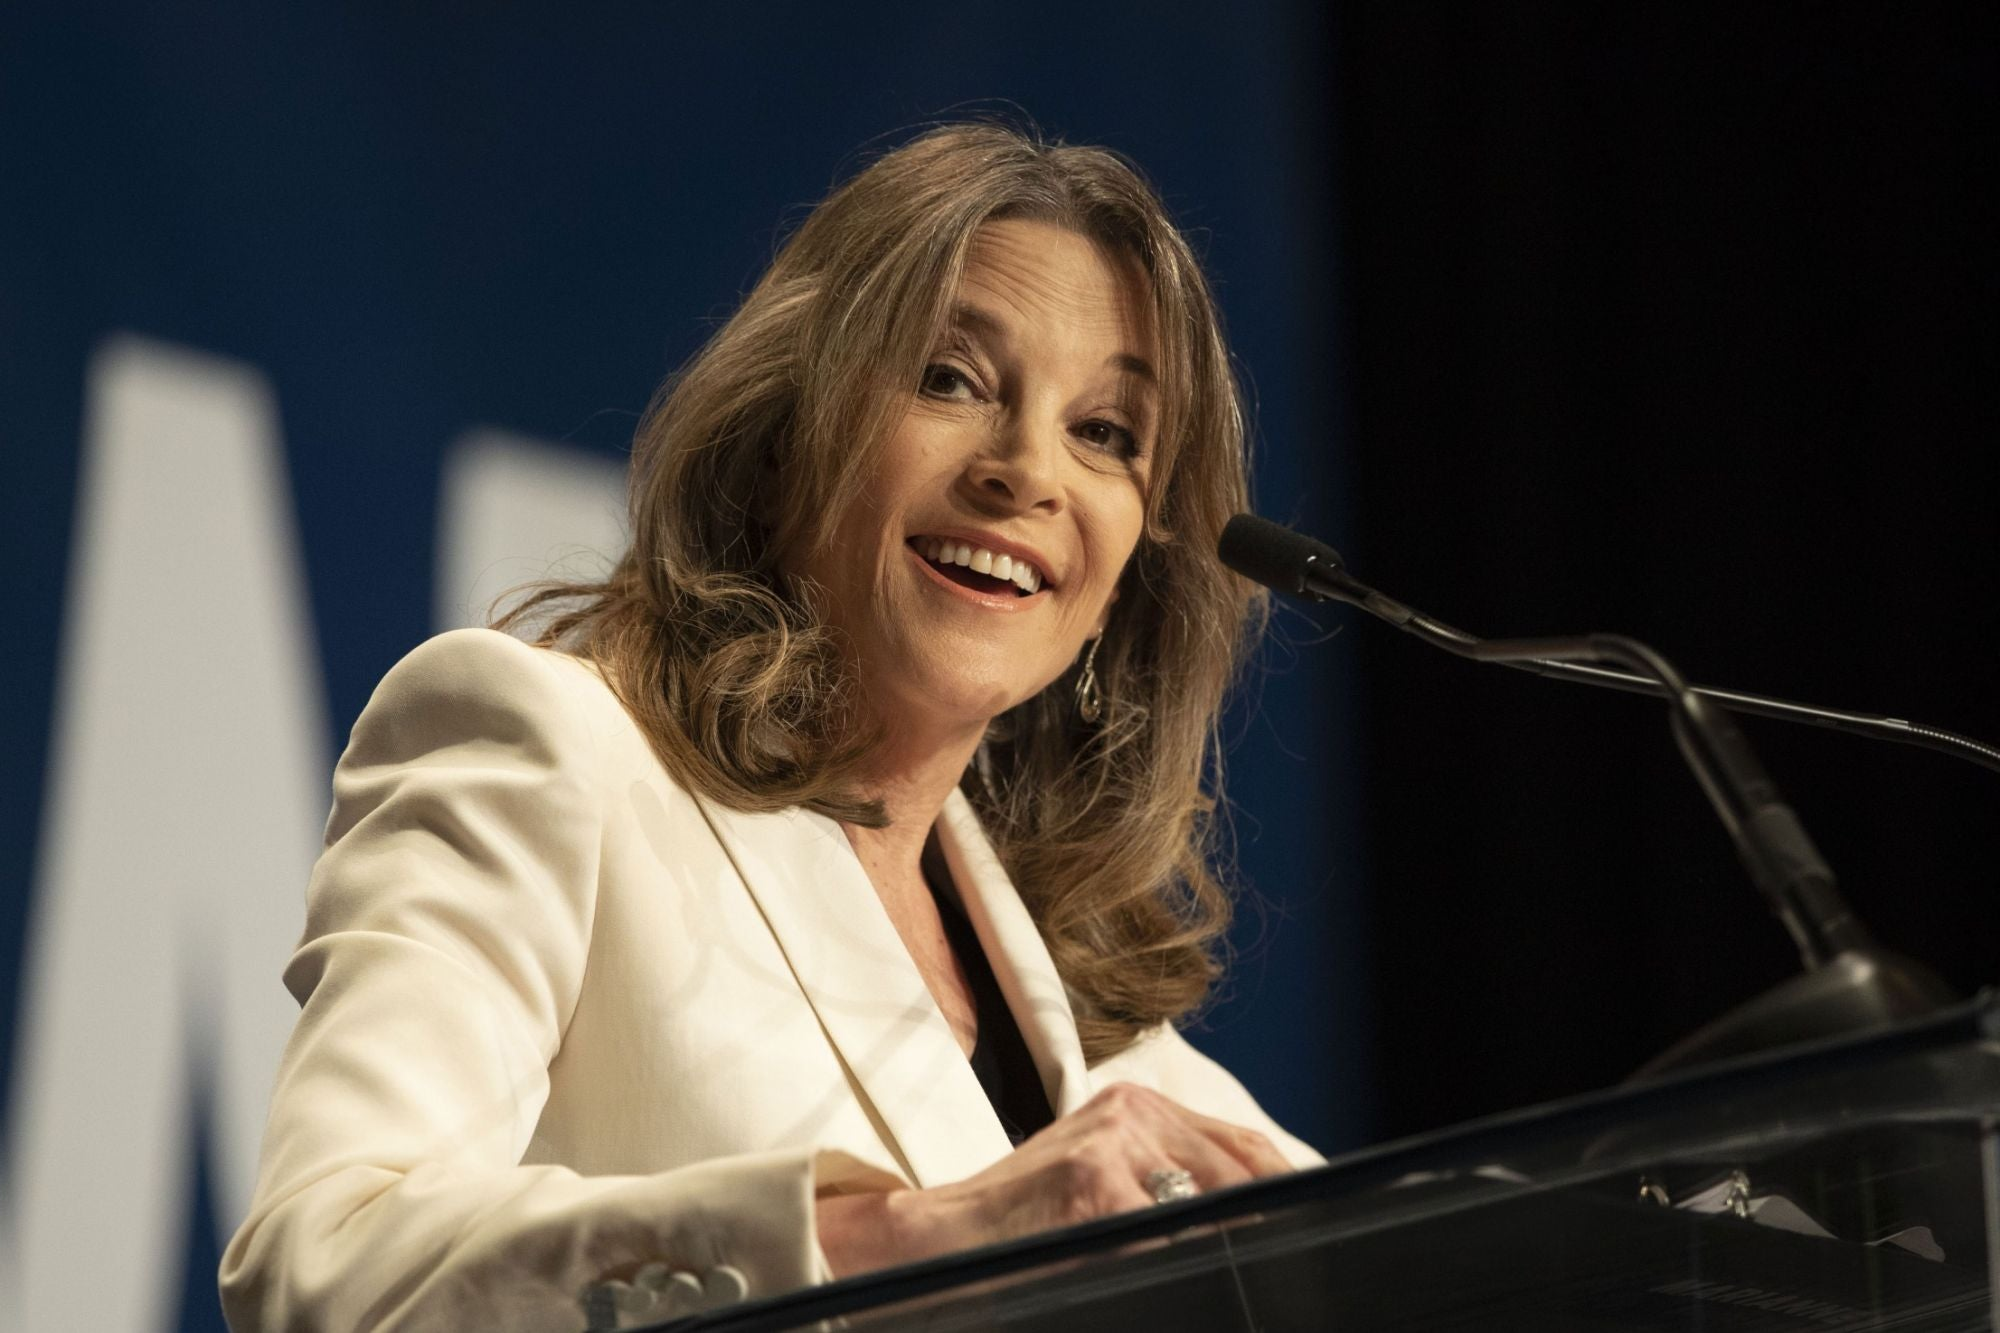 Marianne Williamson May Seem a Little Bananas, however She's Right to Focus on Food Issues thumbnail